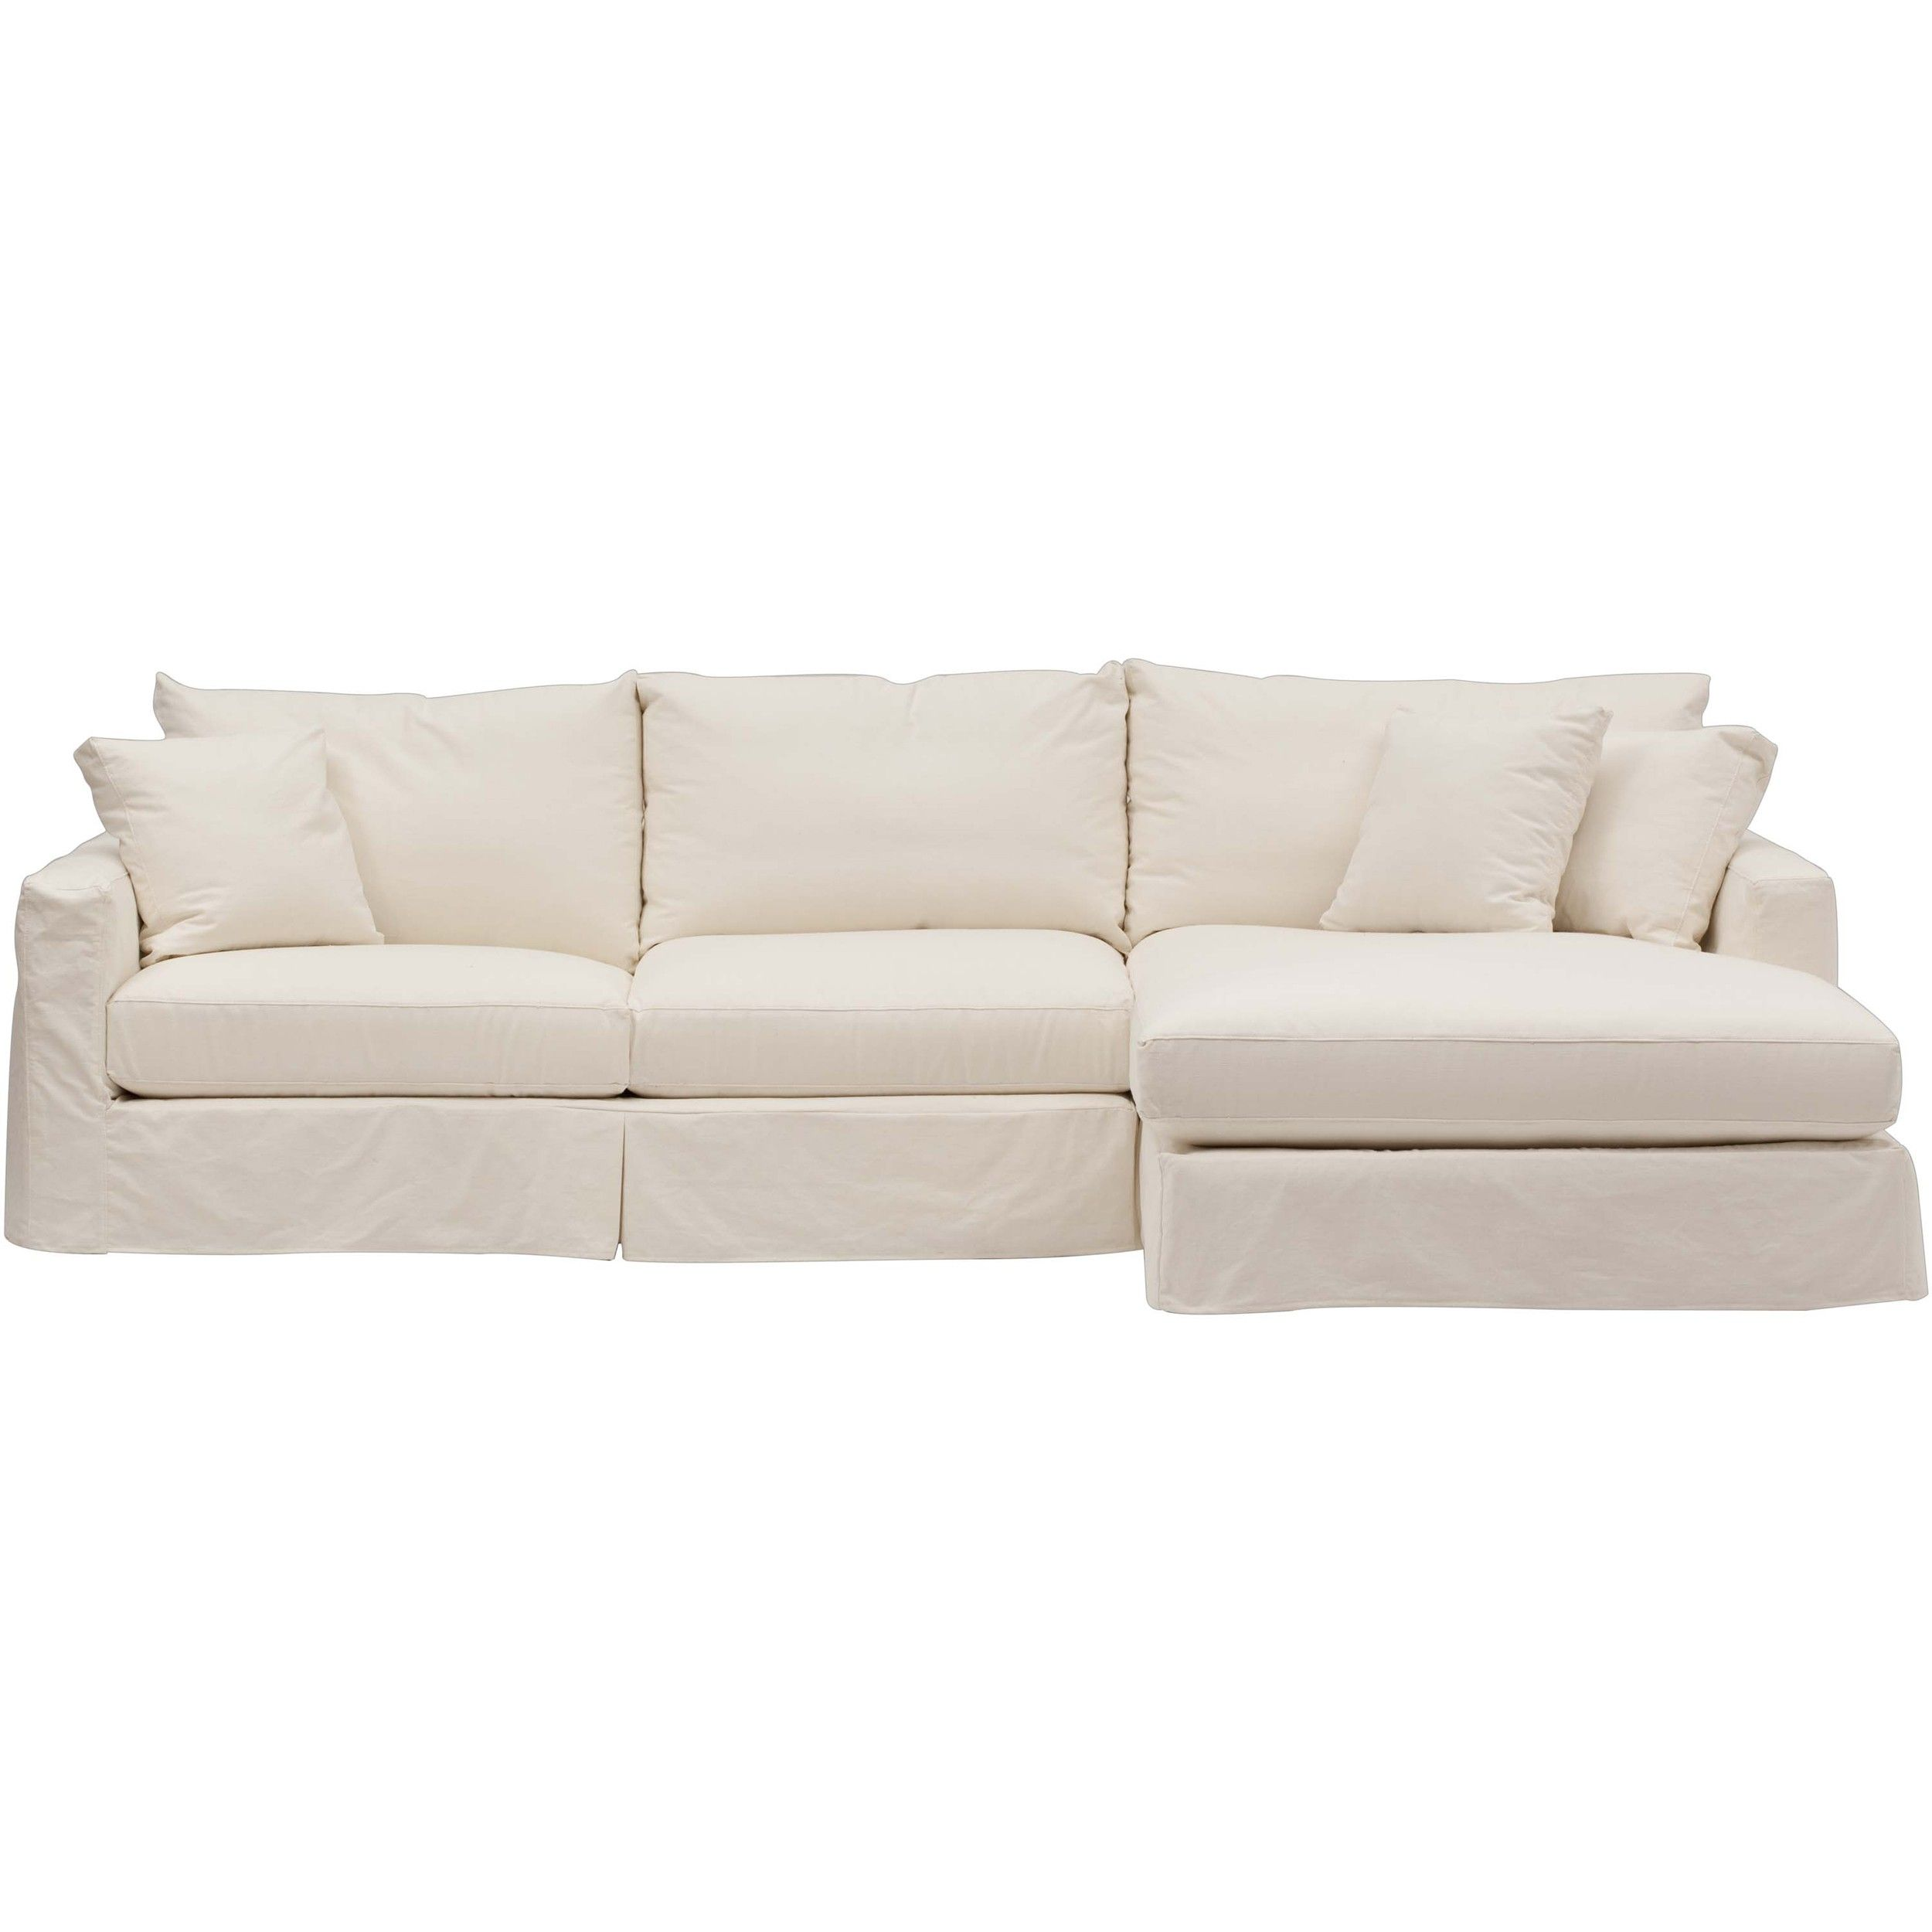 size design slipcover full large sectional feet studio of sofas renata slipcovers sofa